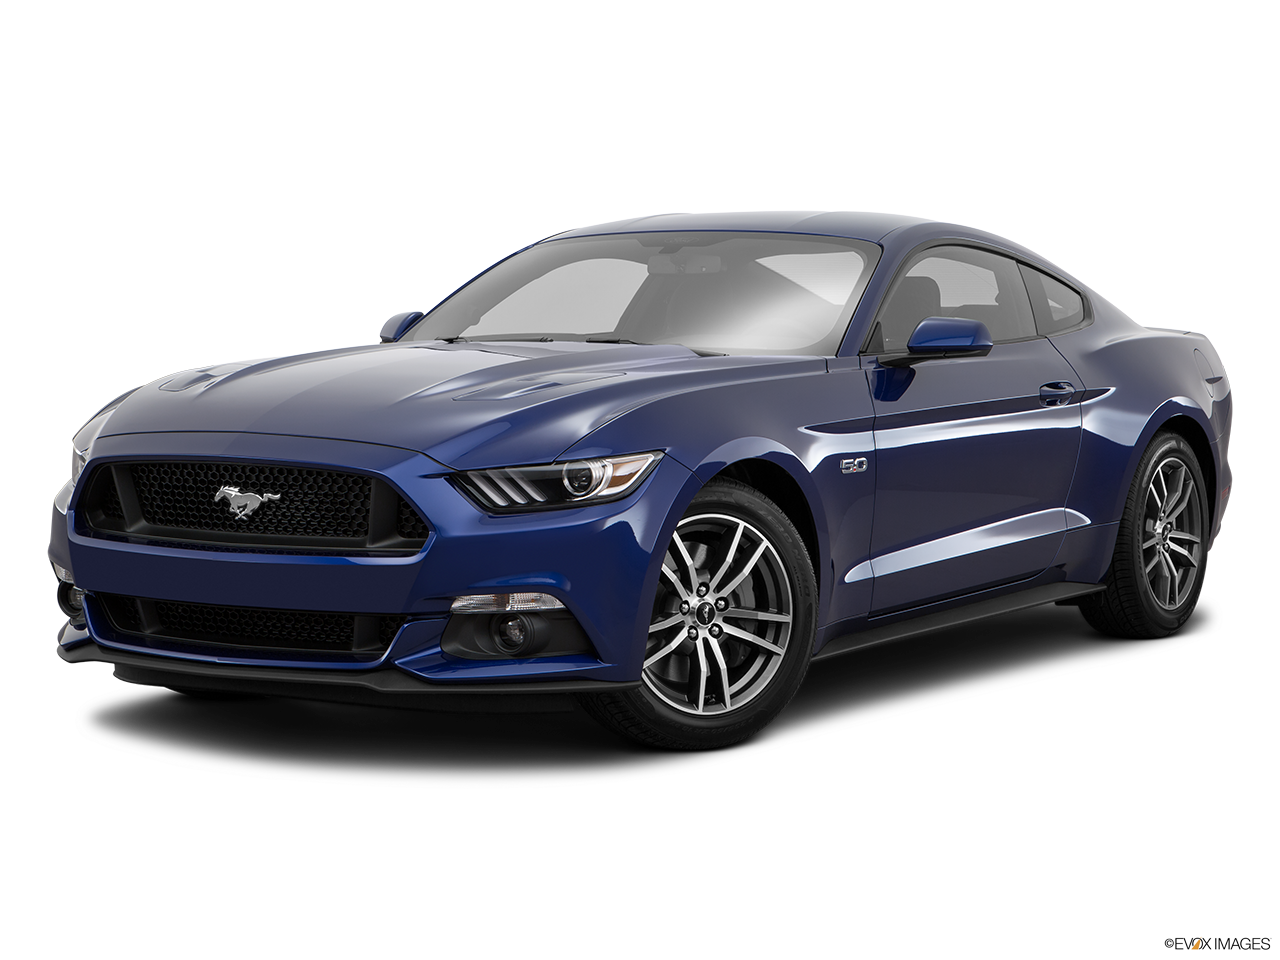 Test Drive A 2016 Ford Mustang at All Star Ford Canton in Canton